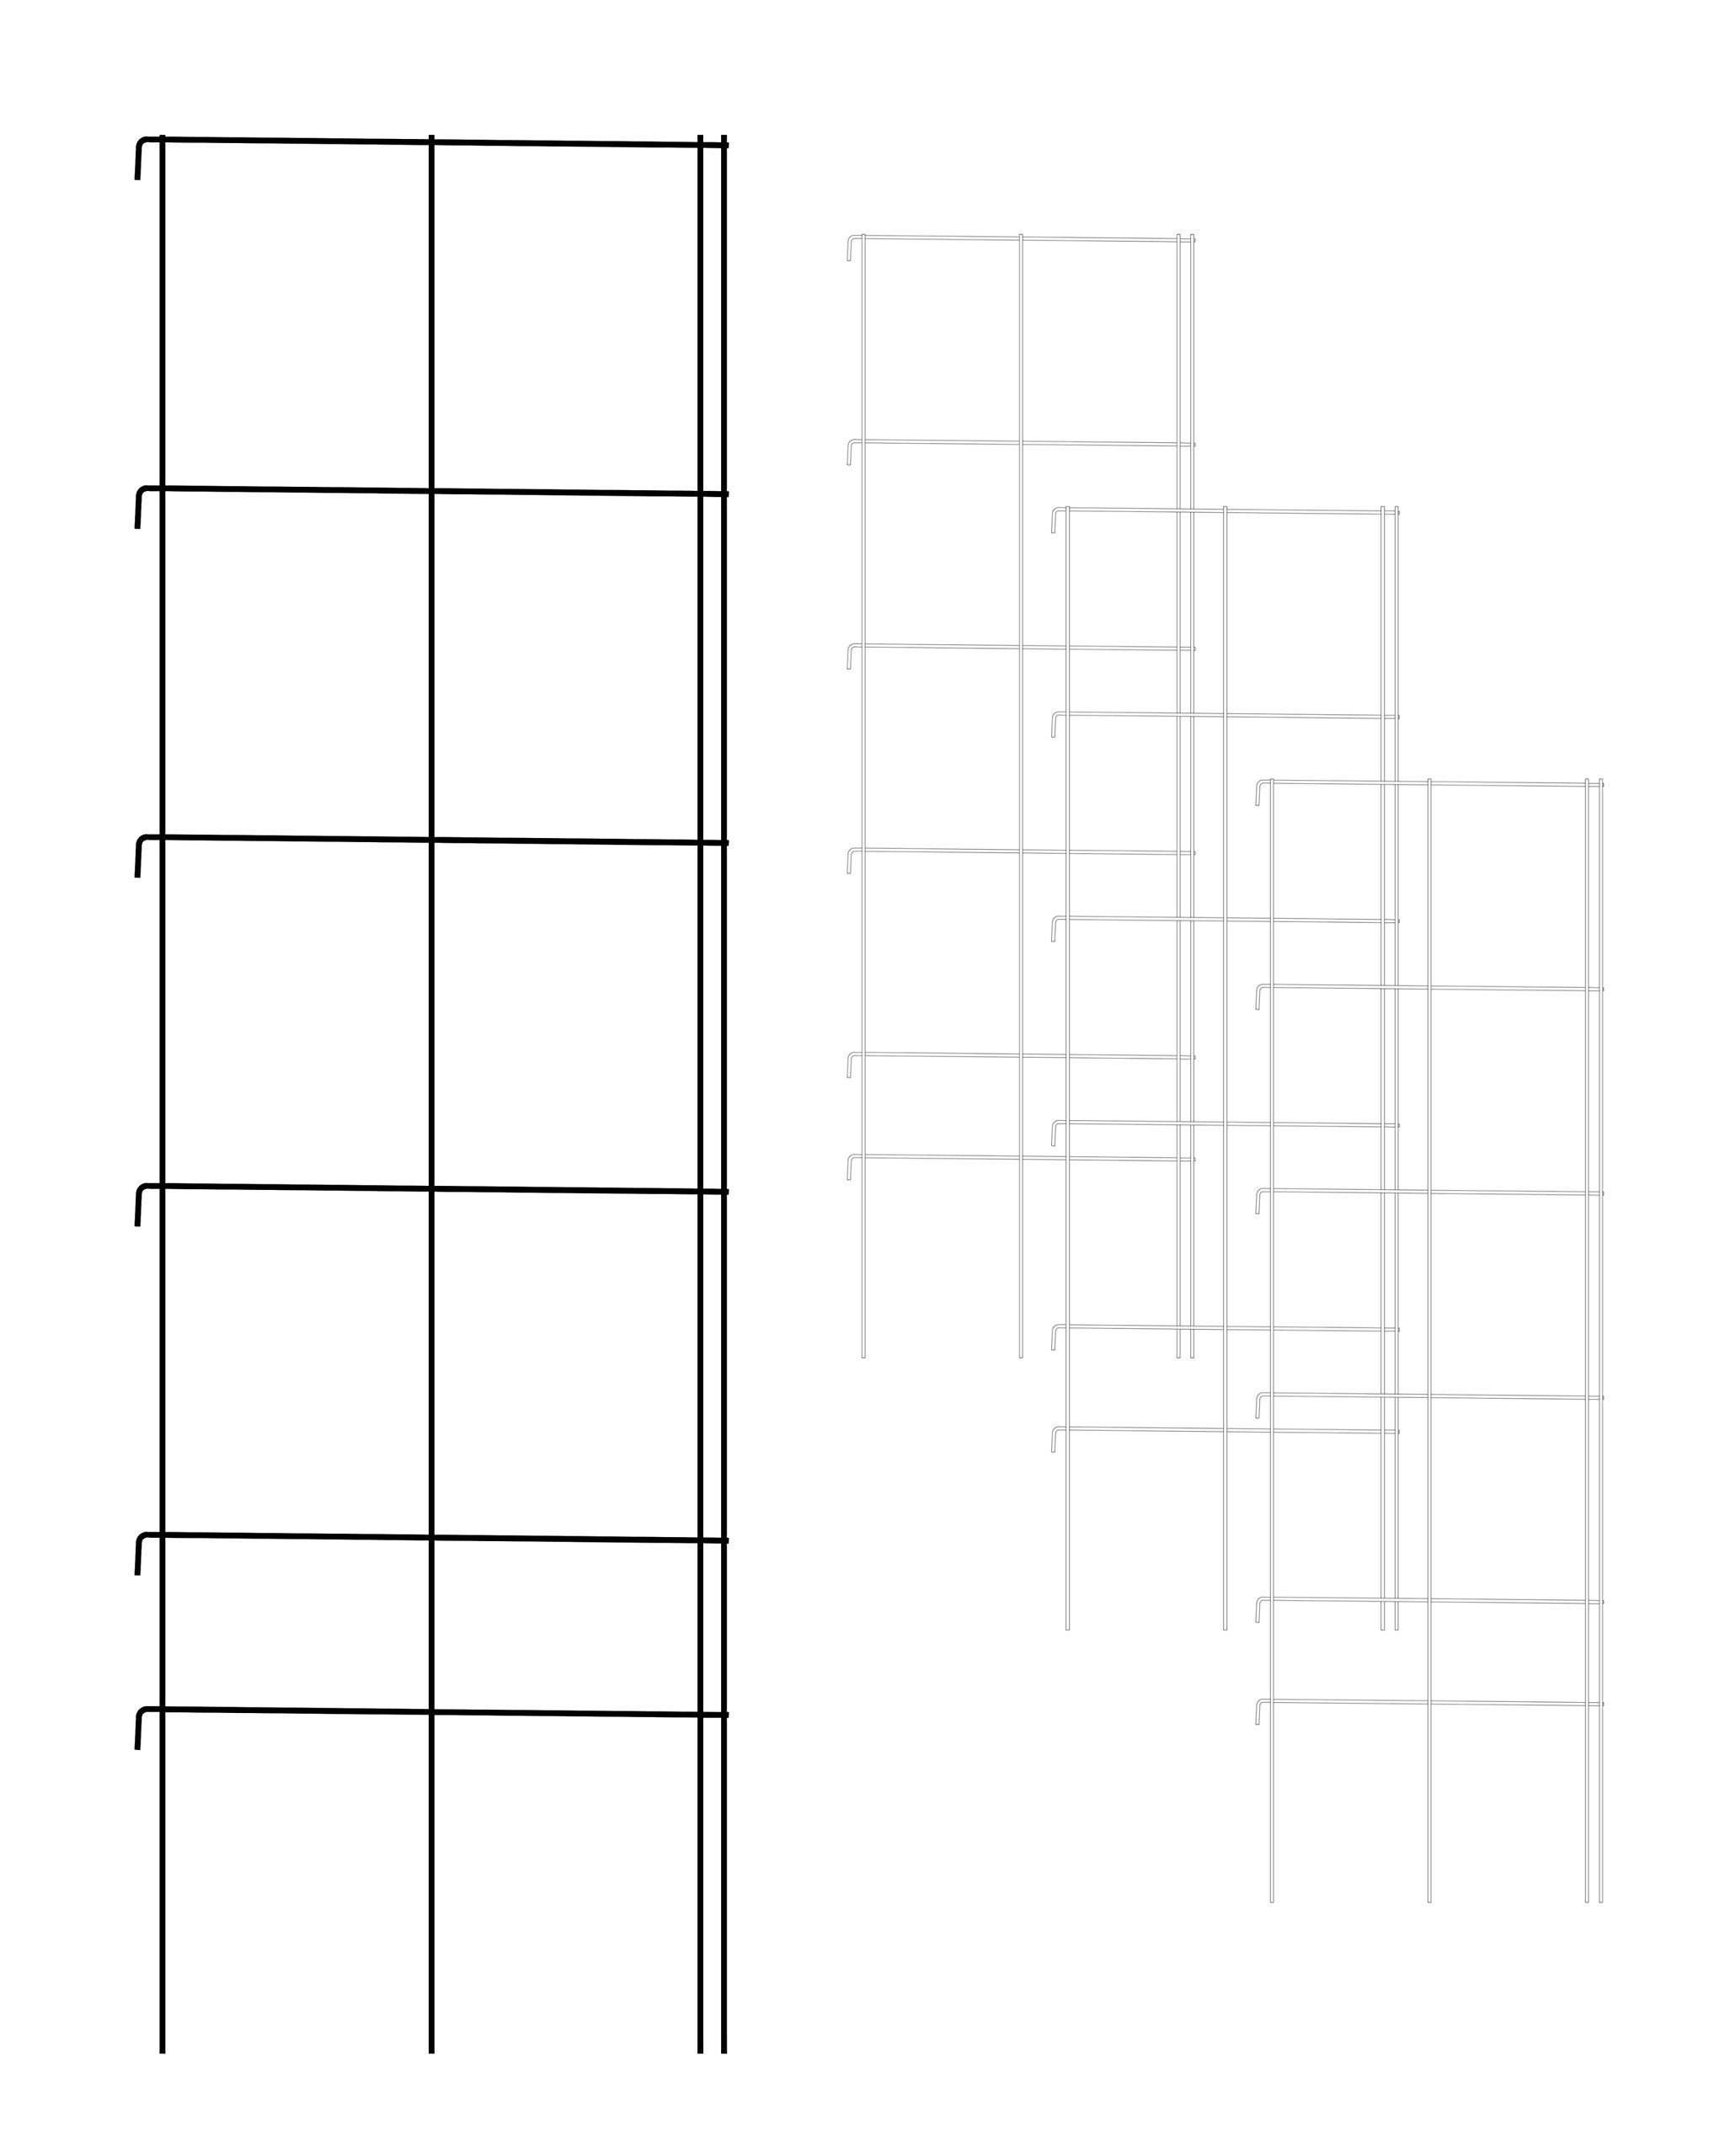 Better Bilt Products Vine Spine (TM), 4 panel pack, 20'' X 66'' Wire Trellis Panel, Large 9'' X 12'' Openings, Made in USA